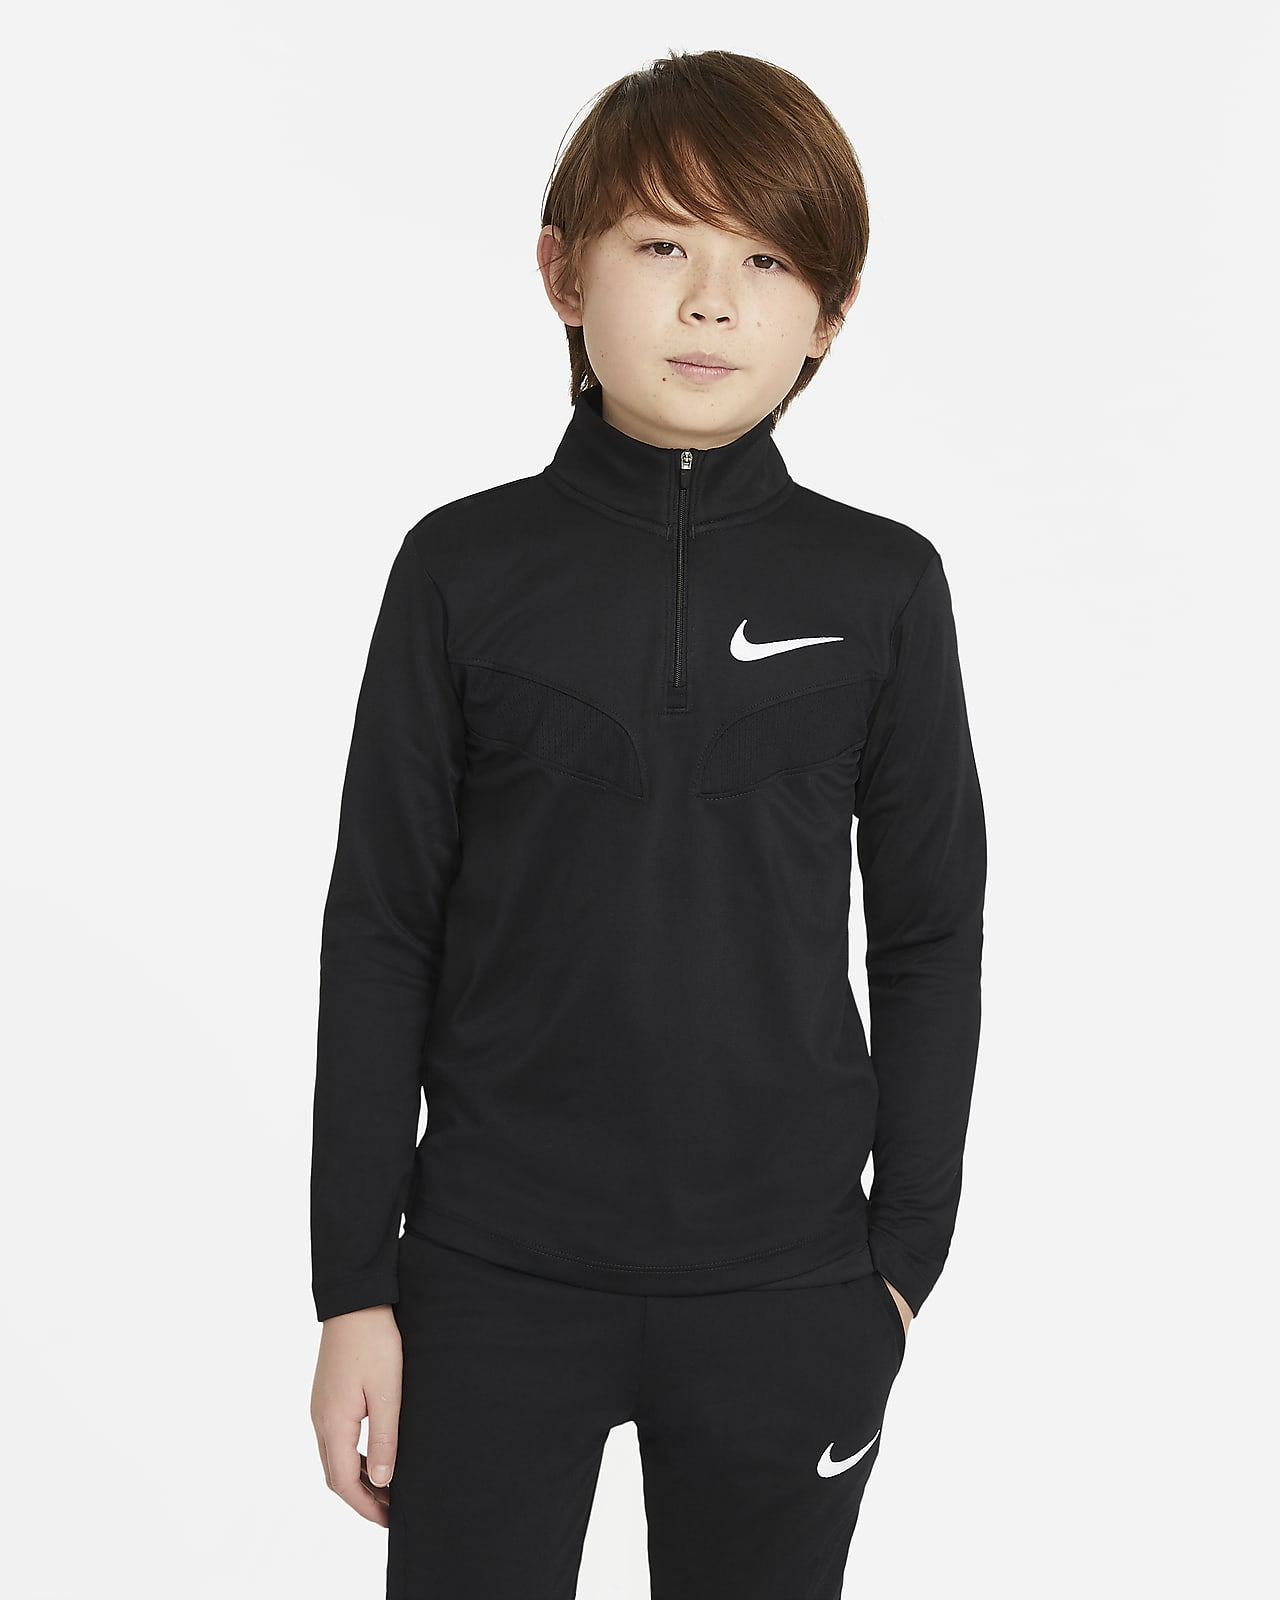 Nike Sport Older Kids' (Boys') Long-Sleeve Training Top